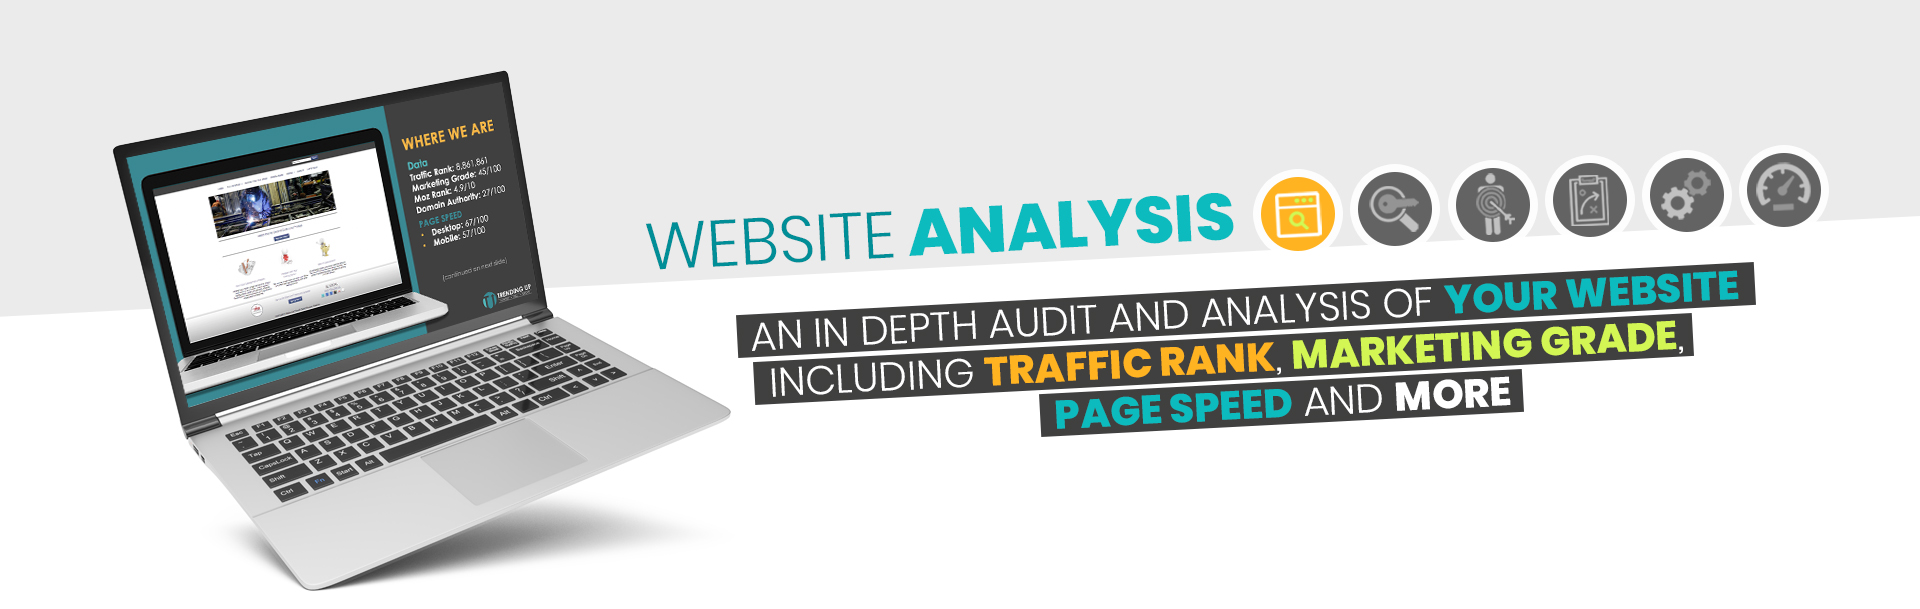 Website Analysis - Website Audit